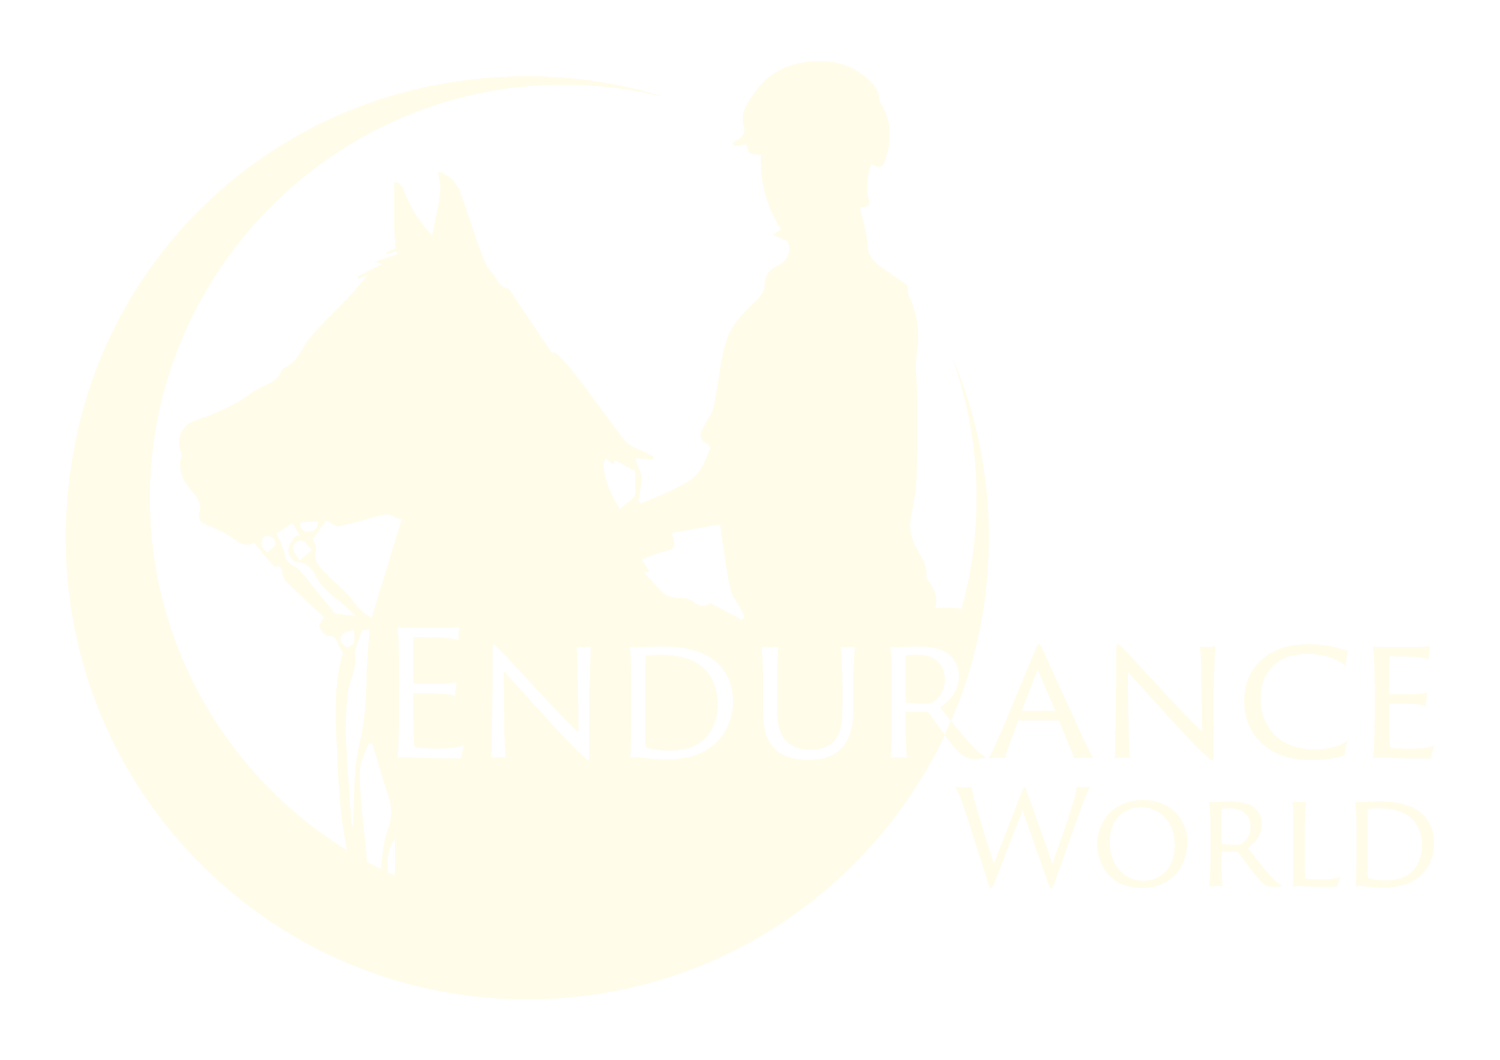 Endurance World